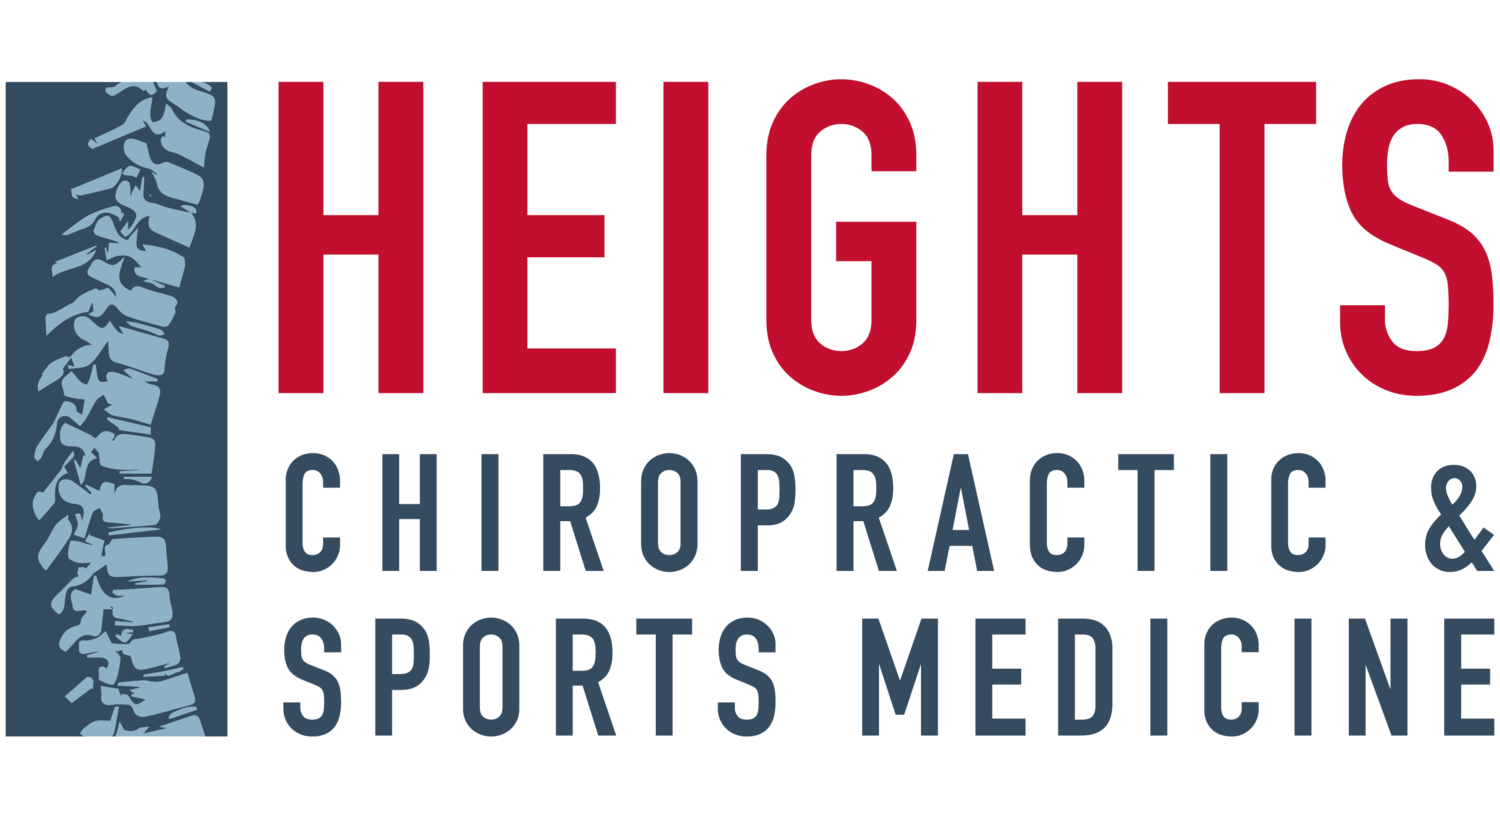 Heights Chiropractic & Sports Medicine